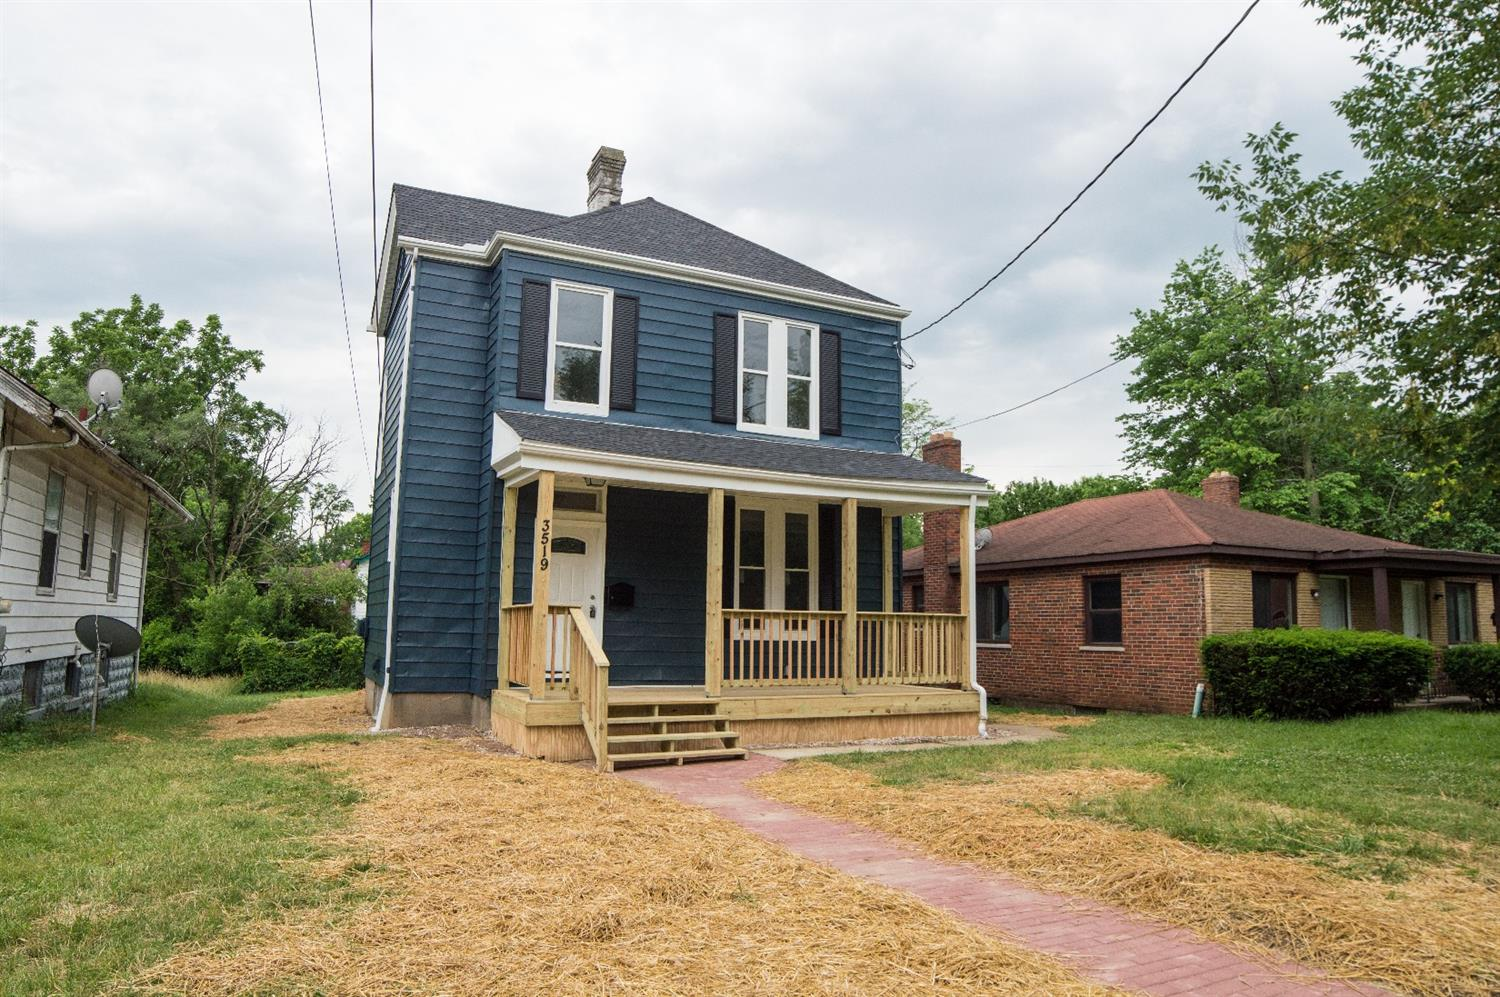 3519 Zinsle Ave Kennedy Hts Oh 45213 Listing Details